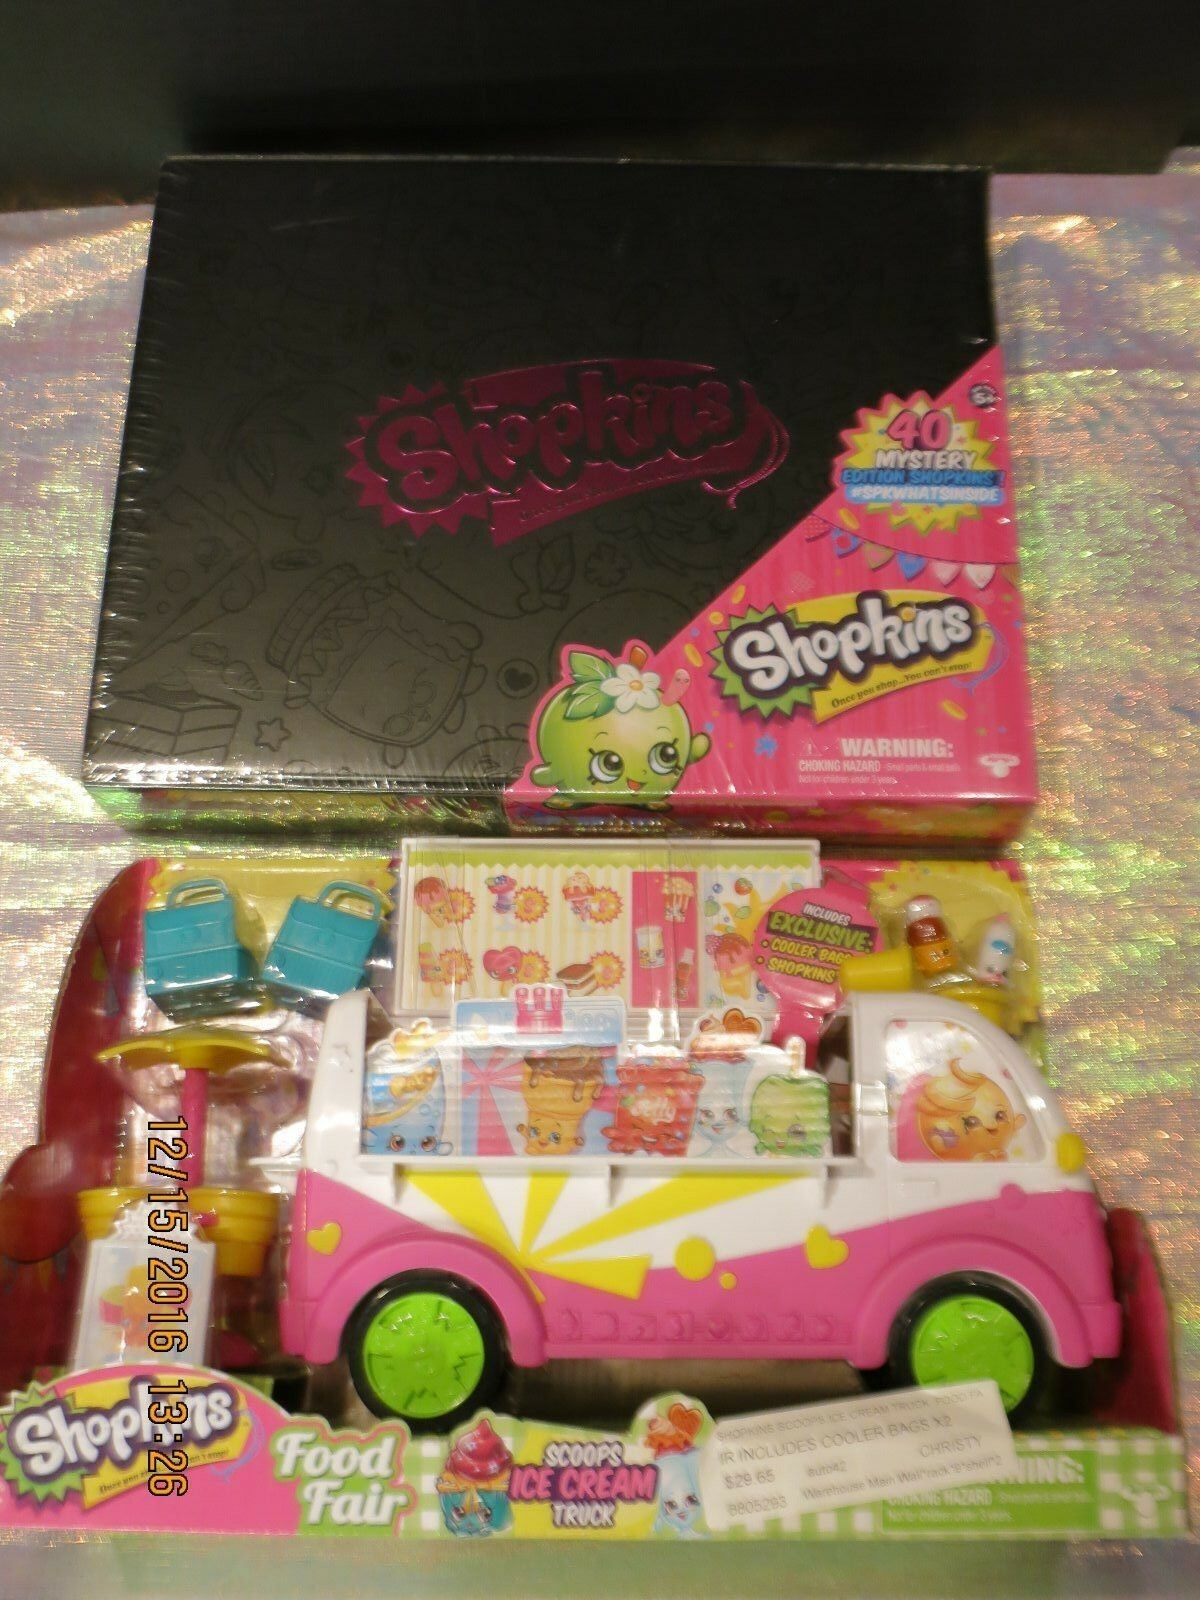 Shopkins misterio Edition 40pc Neón-Target Exclusive & Ice Cream Truck Nuevo Nuevo en Paquete